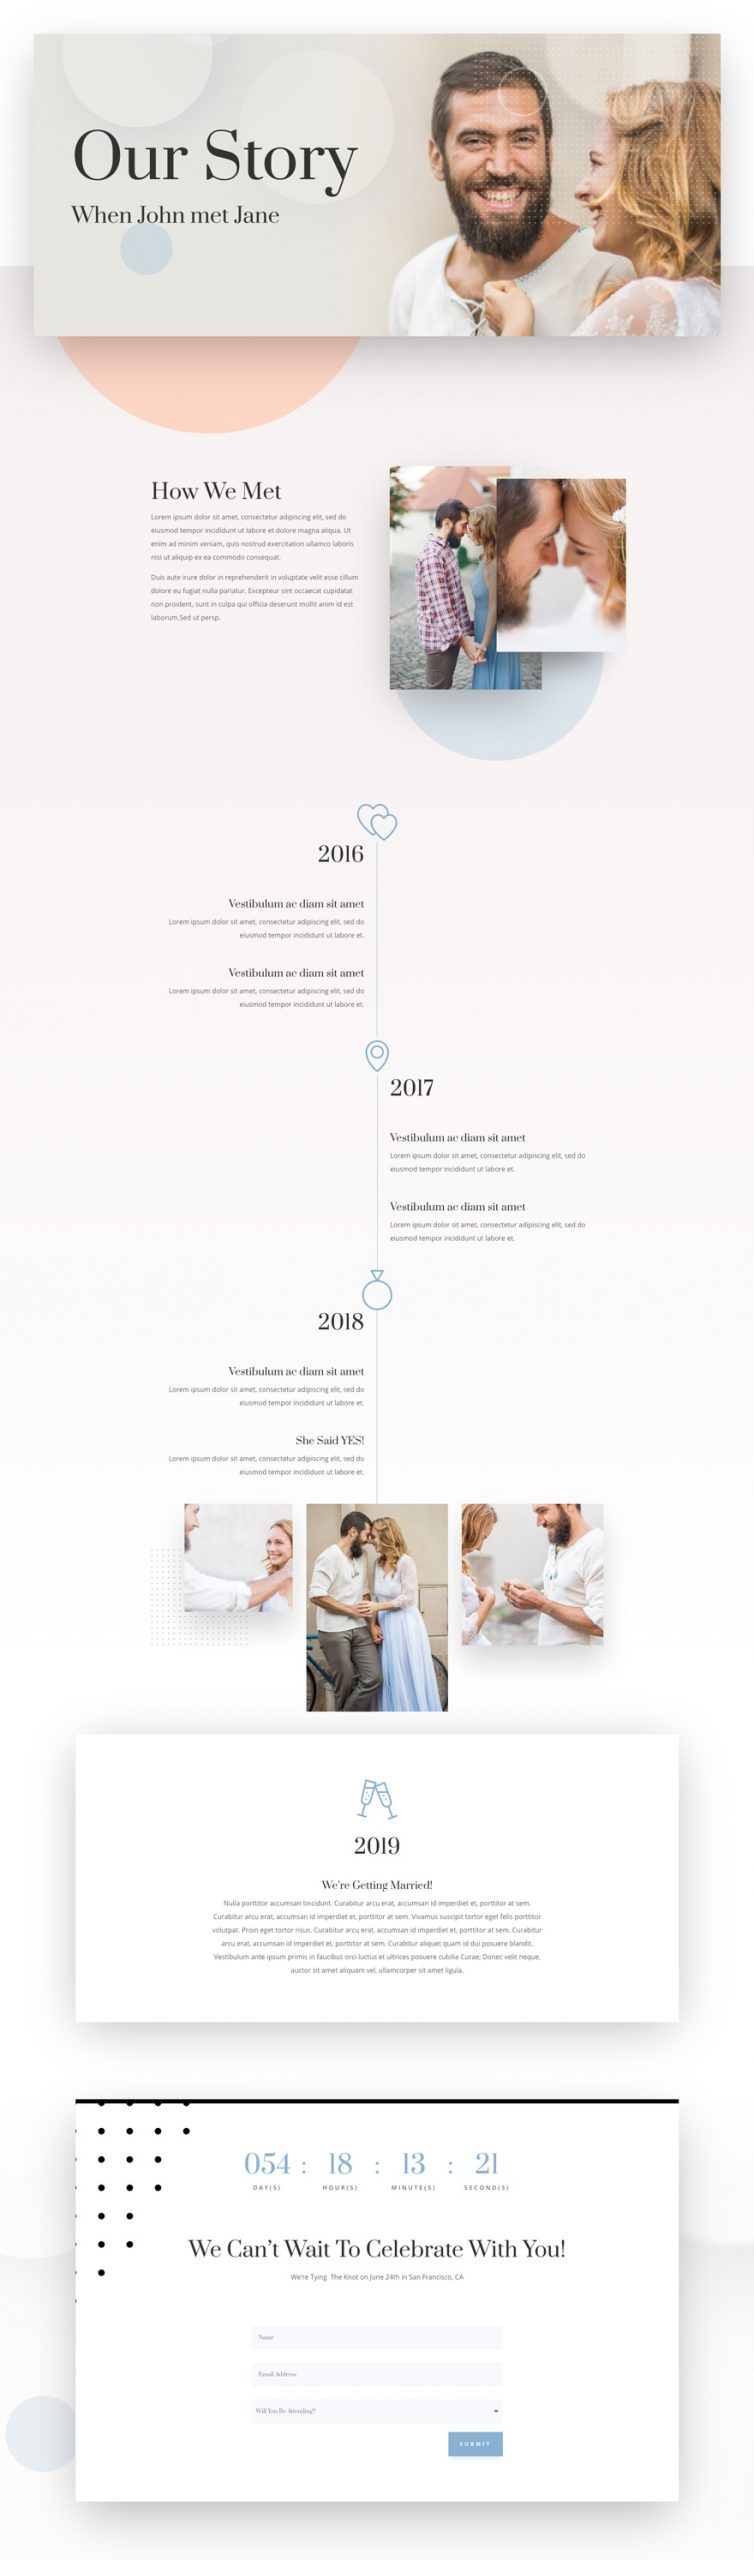 wedding engagement story page scaled